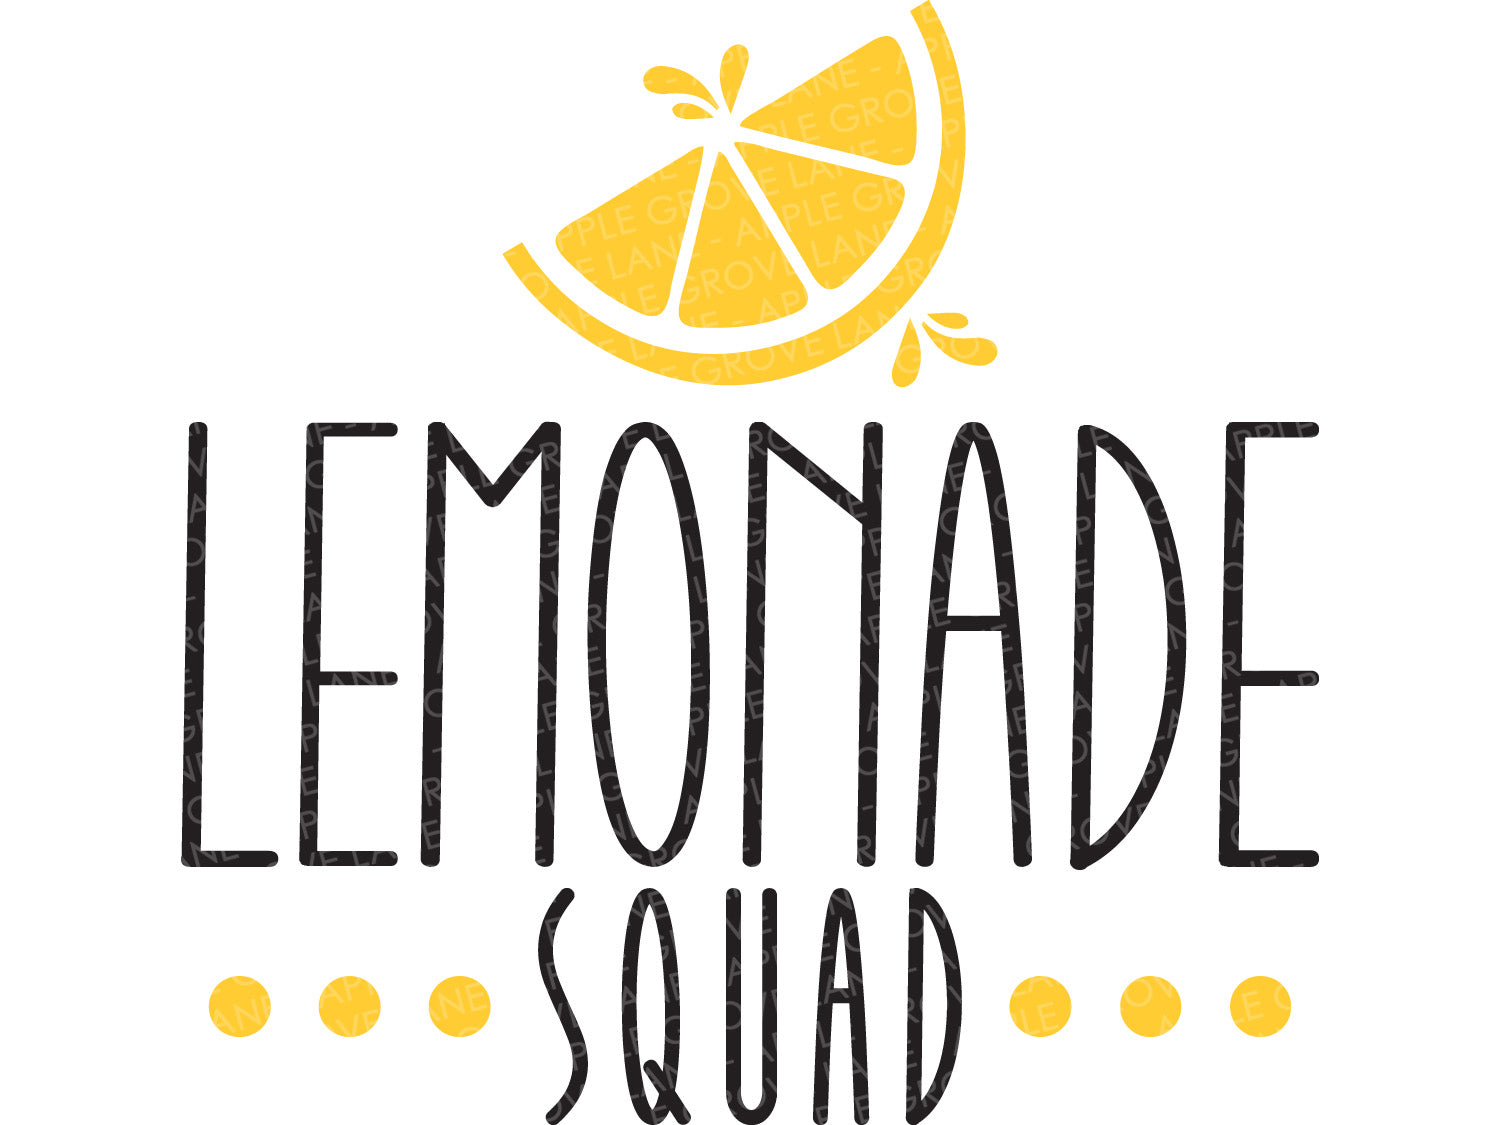 Lemonade Squad Svg - Lemons Svg - Lemonade Stand Svg - Summer Svg - Lemonade Shirt Svg - Lemonade Svg - Kids Lemonade Svg